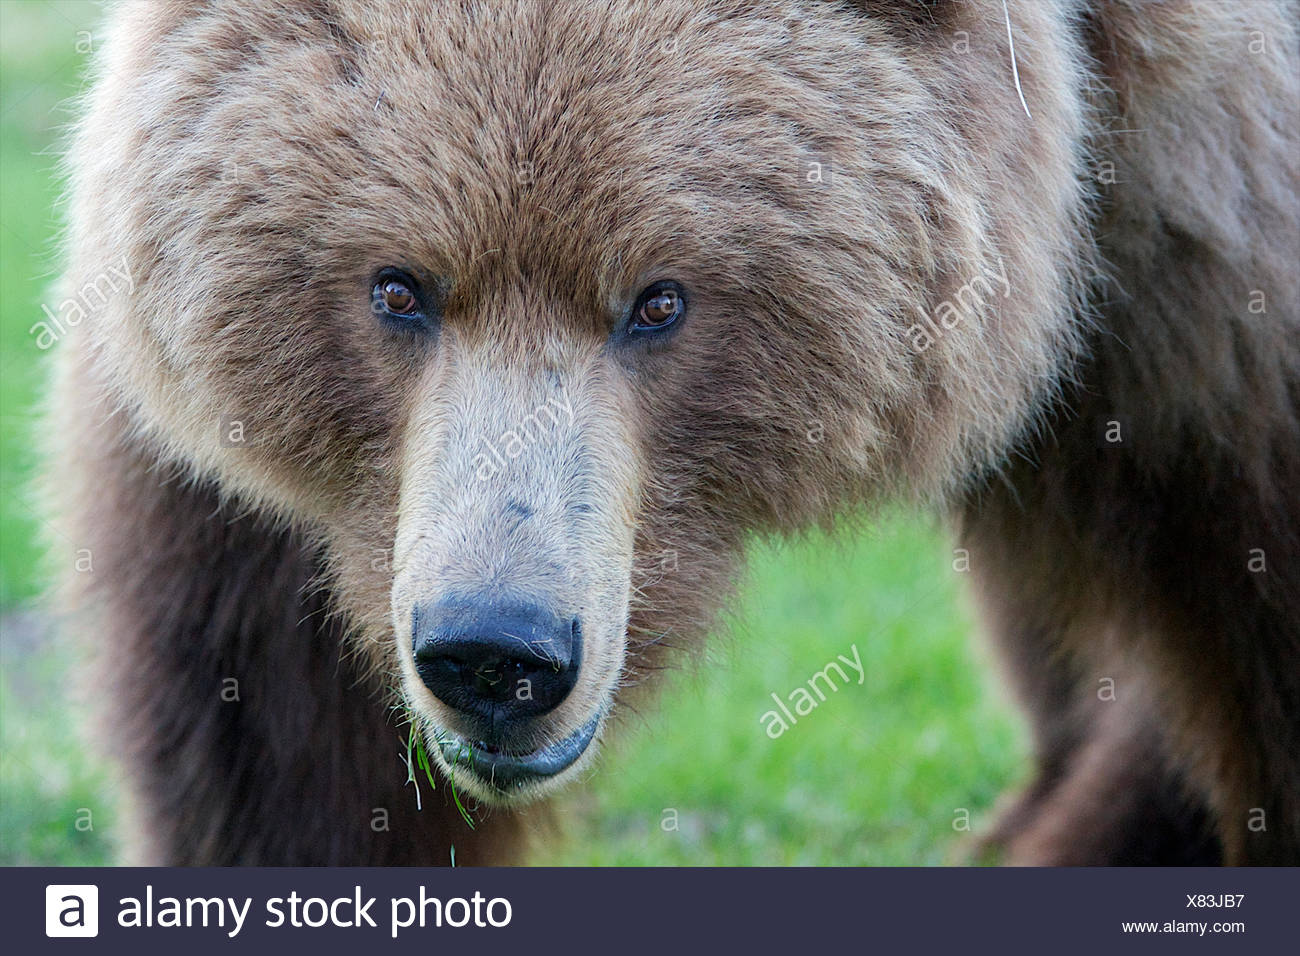 The eyes of a grizzly bear unsure of its surroundings. - Stock Image